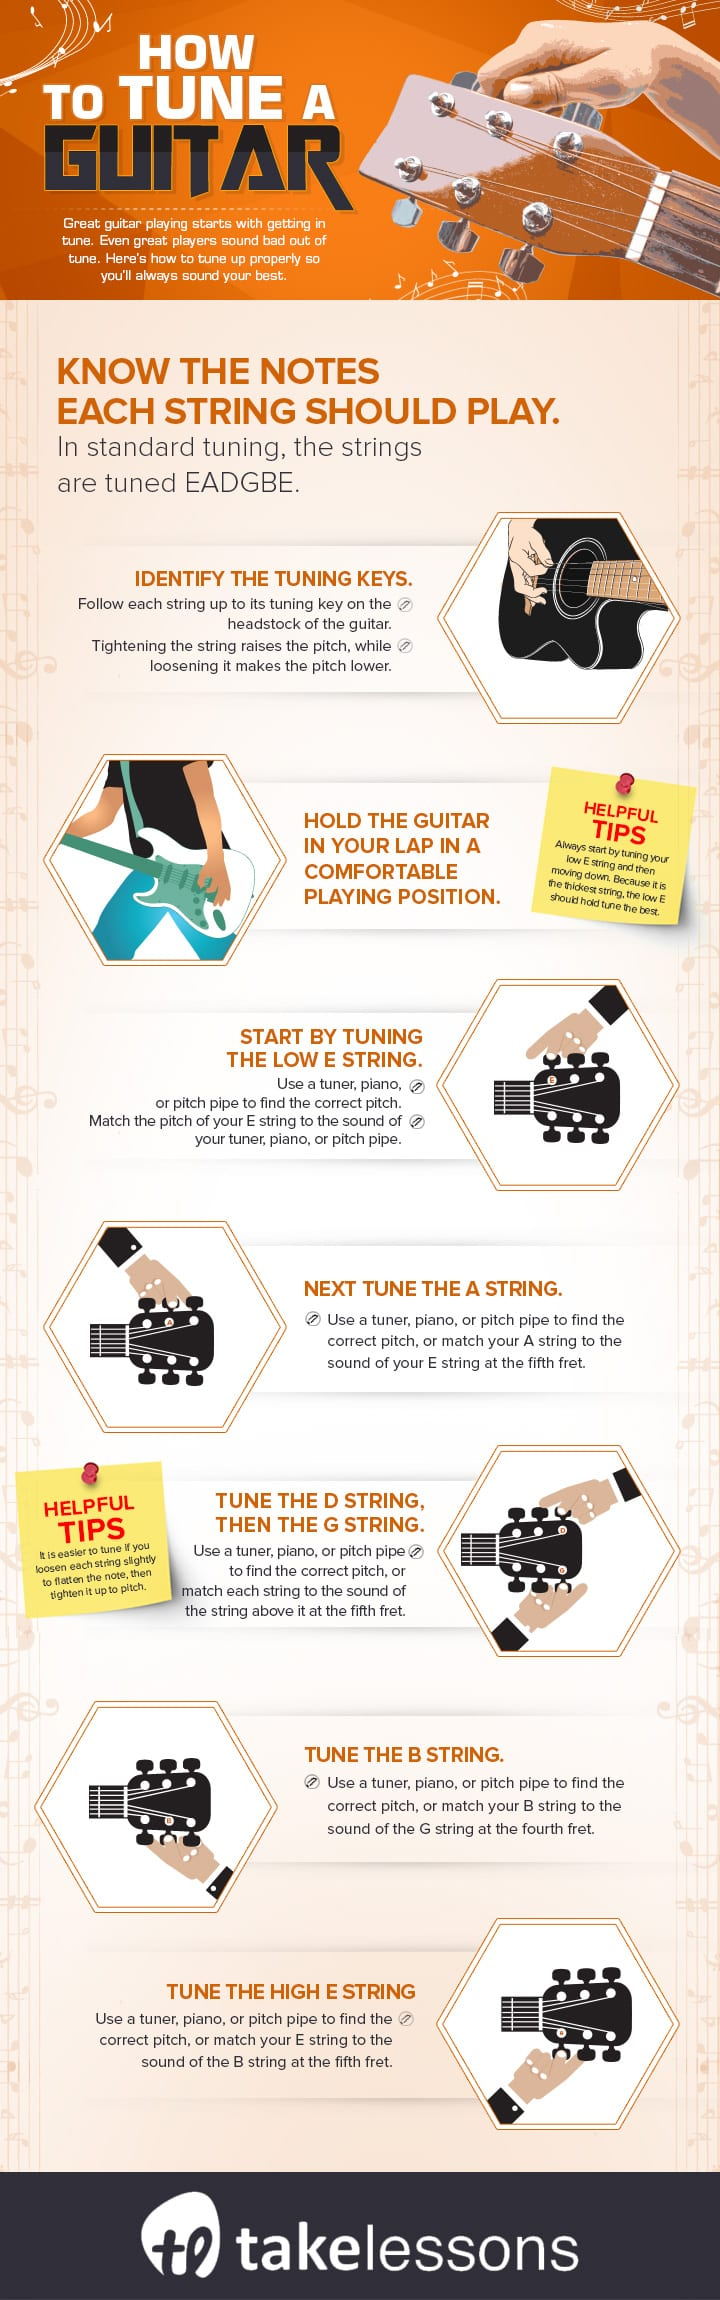 How To Tune A Guitar Properly The Complete Guide Infographic String Tuning Diagram